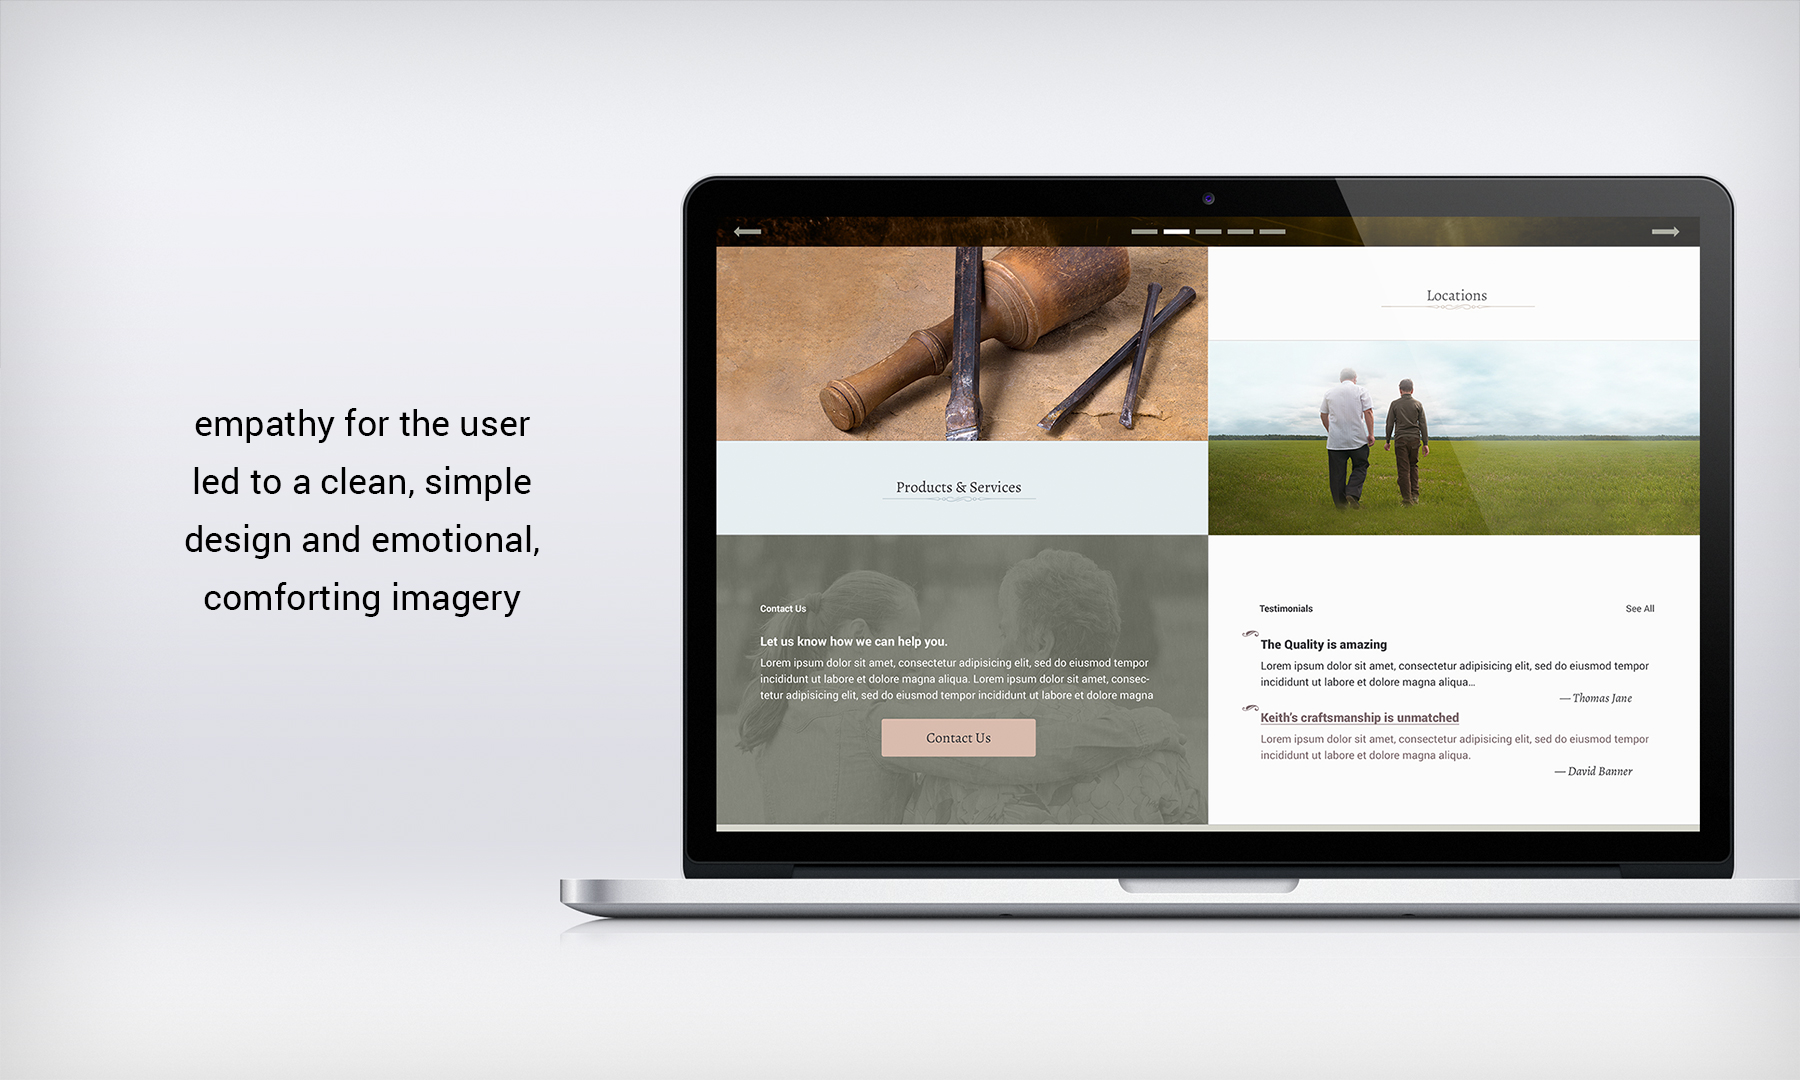 Empathy for users led to a clean, simple design and emotional, comforting imagery.